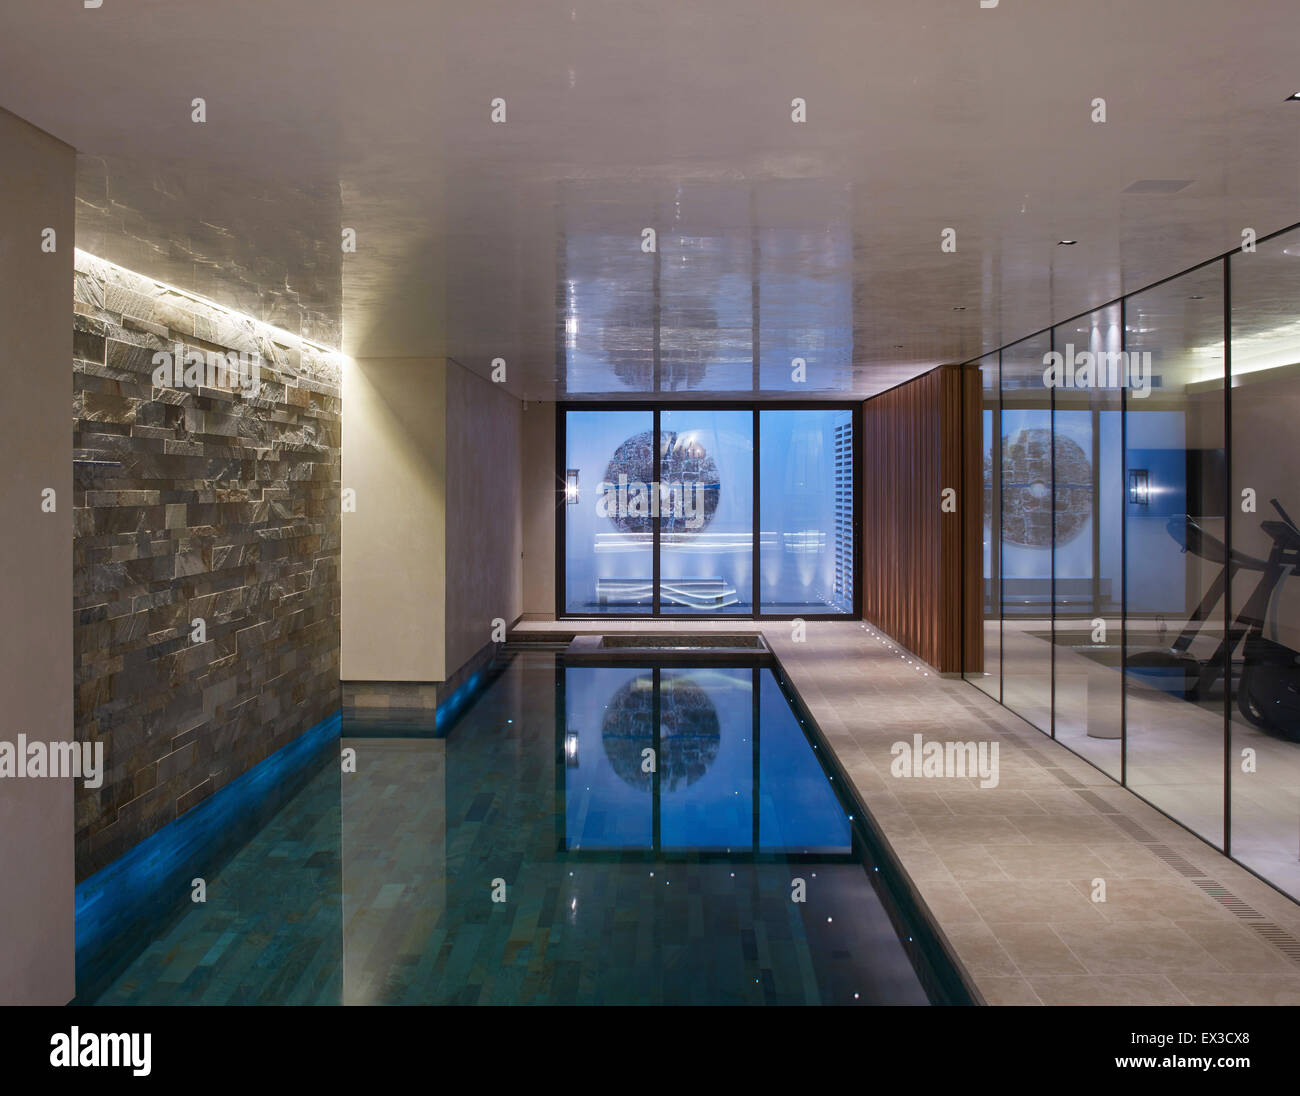 interior view in basement pool area private residence london stock photo 84898528 alamy. Black Bedroom Furniture Sets. Home Design Ideas